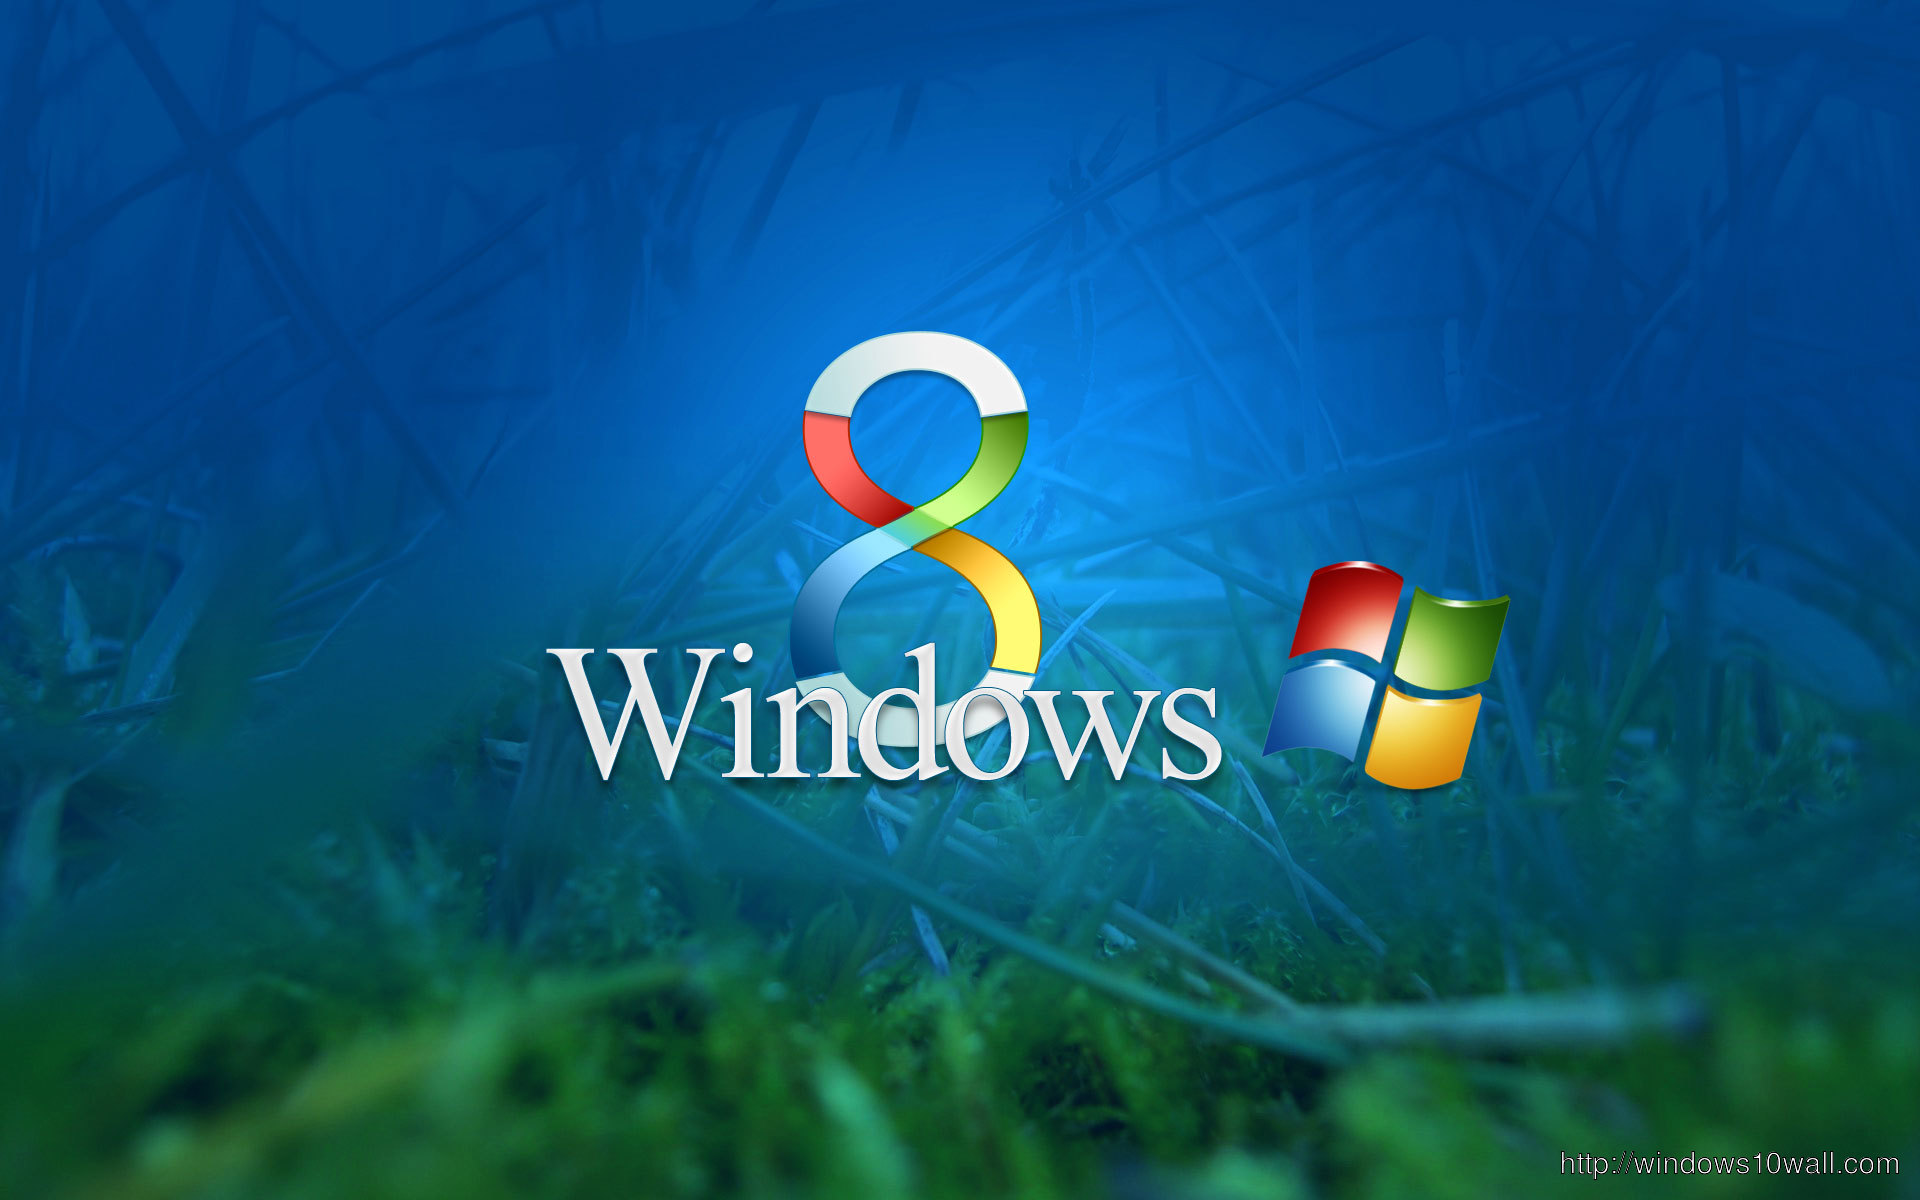 Microsoft Upcoming Windows 8 Wallpapers